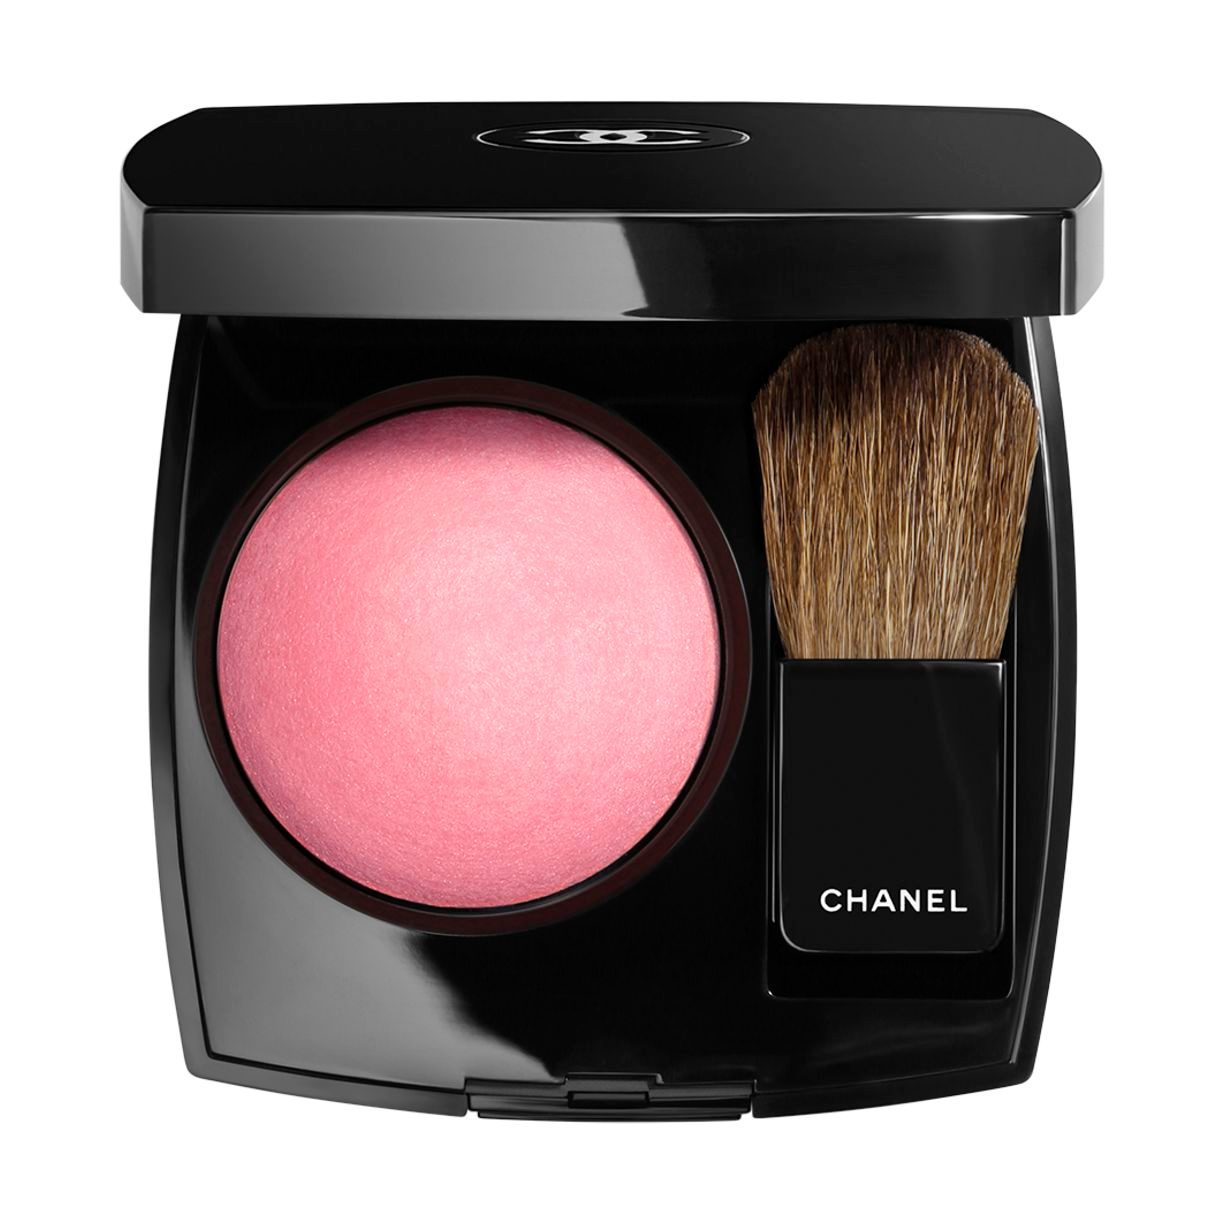 JOUES CONTRASTE POWDER BLUSH 64 PINK EXPLOSION 4G